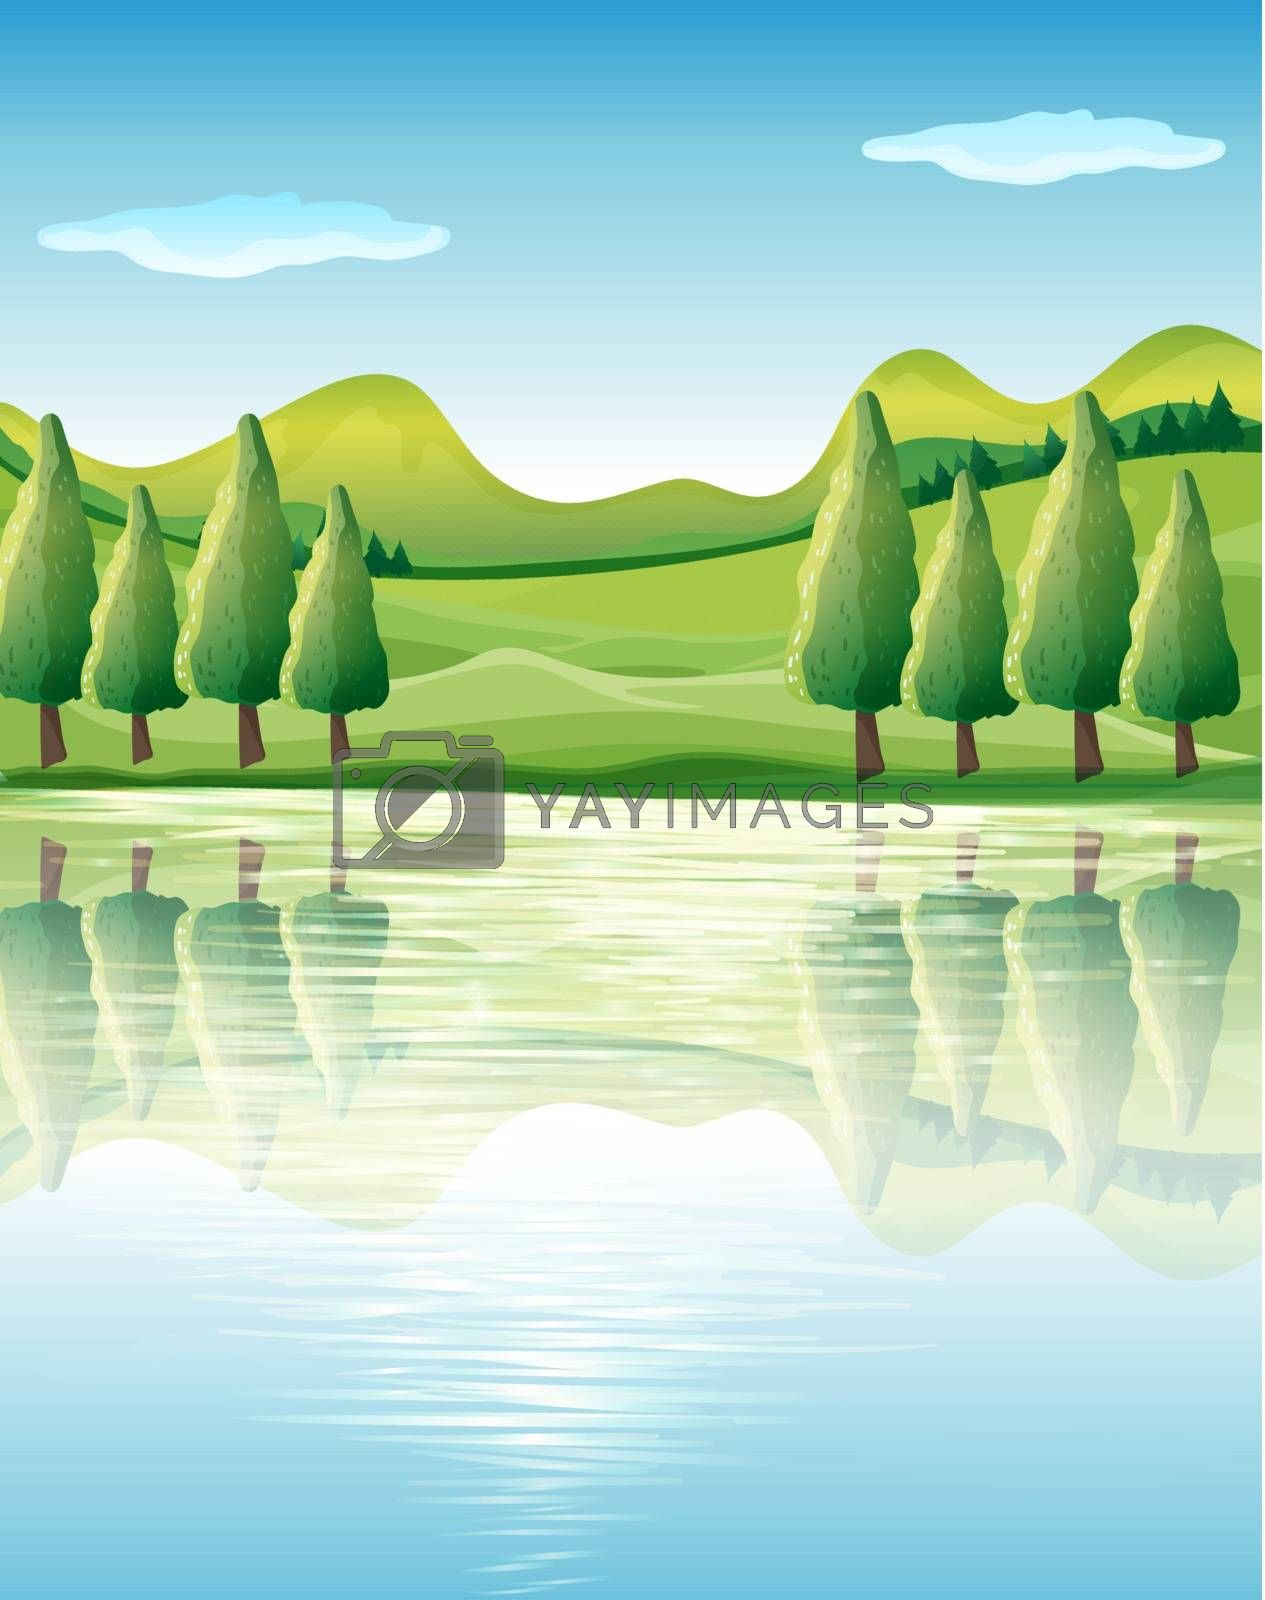 Illustration of the beauty of nature